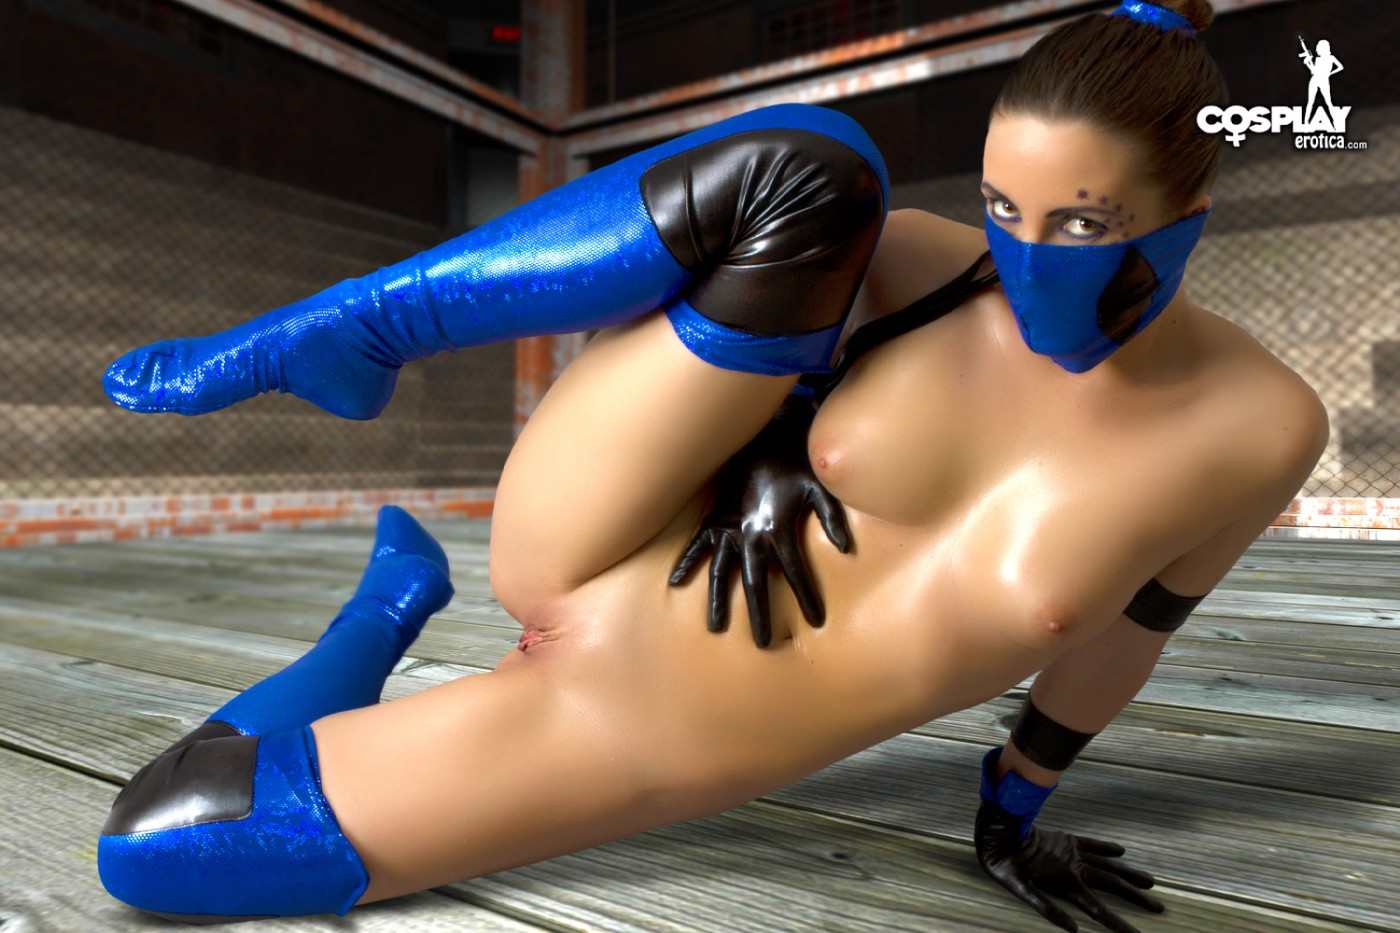 mortal kombat nude video